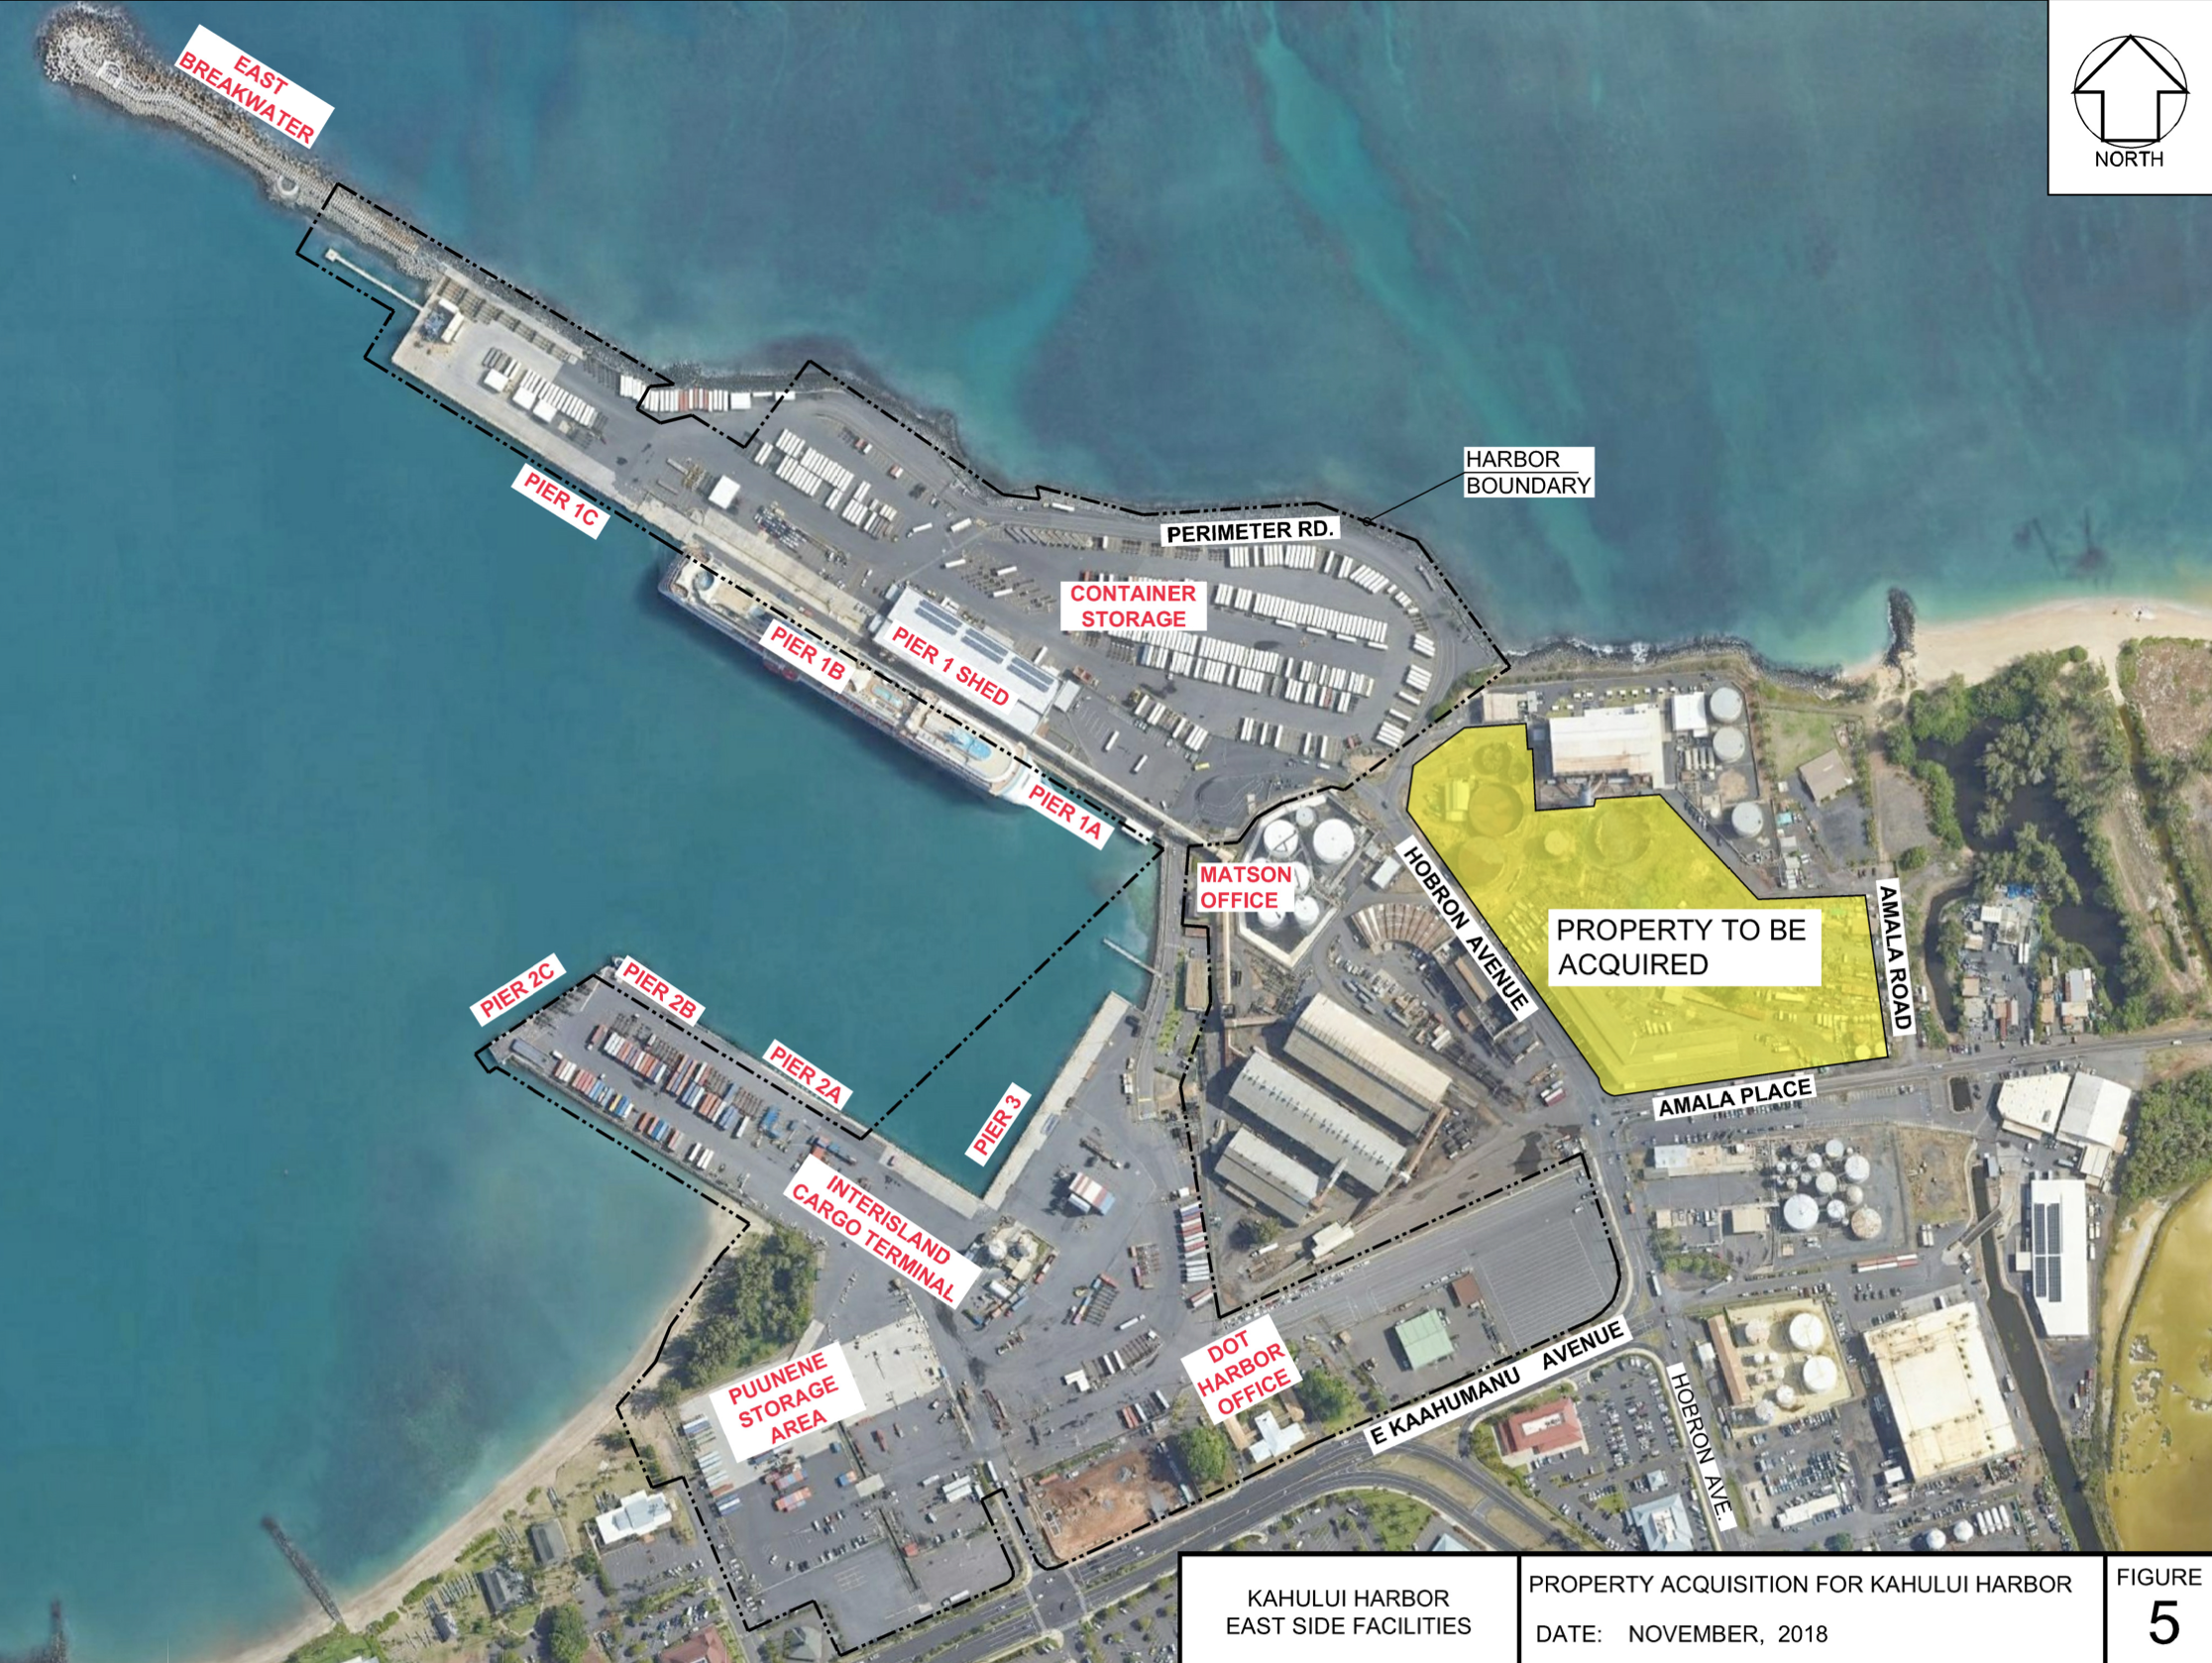 State Harbors Division Seeks Expansion of Cargo Storage in Kahului